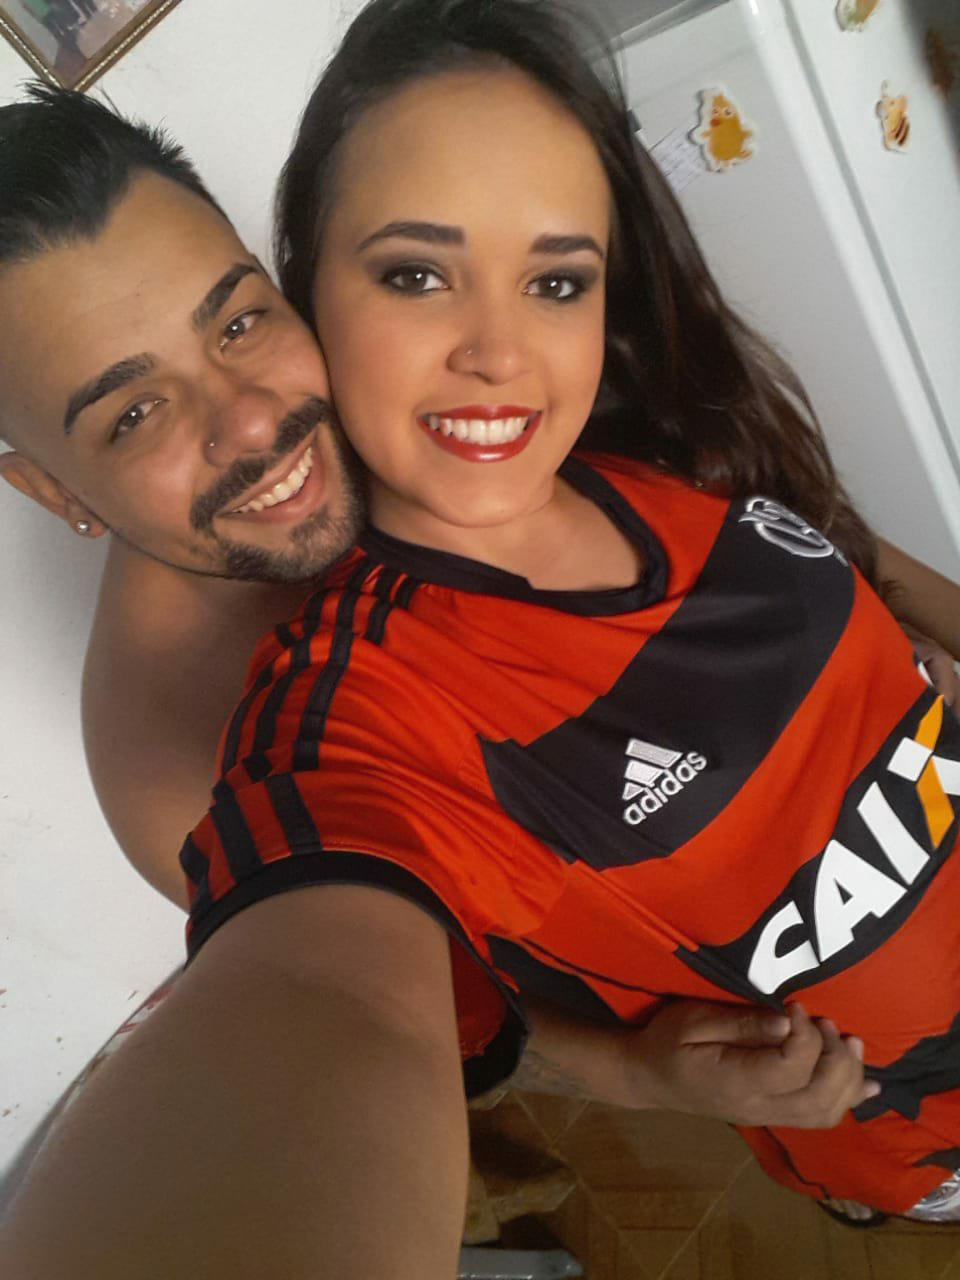 Picture shows Christhopher Anthony Tavares Coelho (27) and Leticia Lopes Fonseca (19) for which the jury delivered a guilty verdict in the Brazilian municipality of Pocos de Caldas, 5th March.